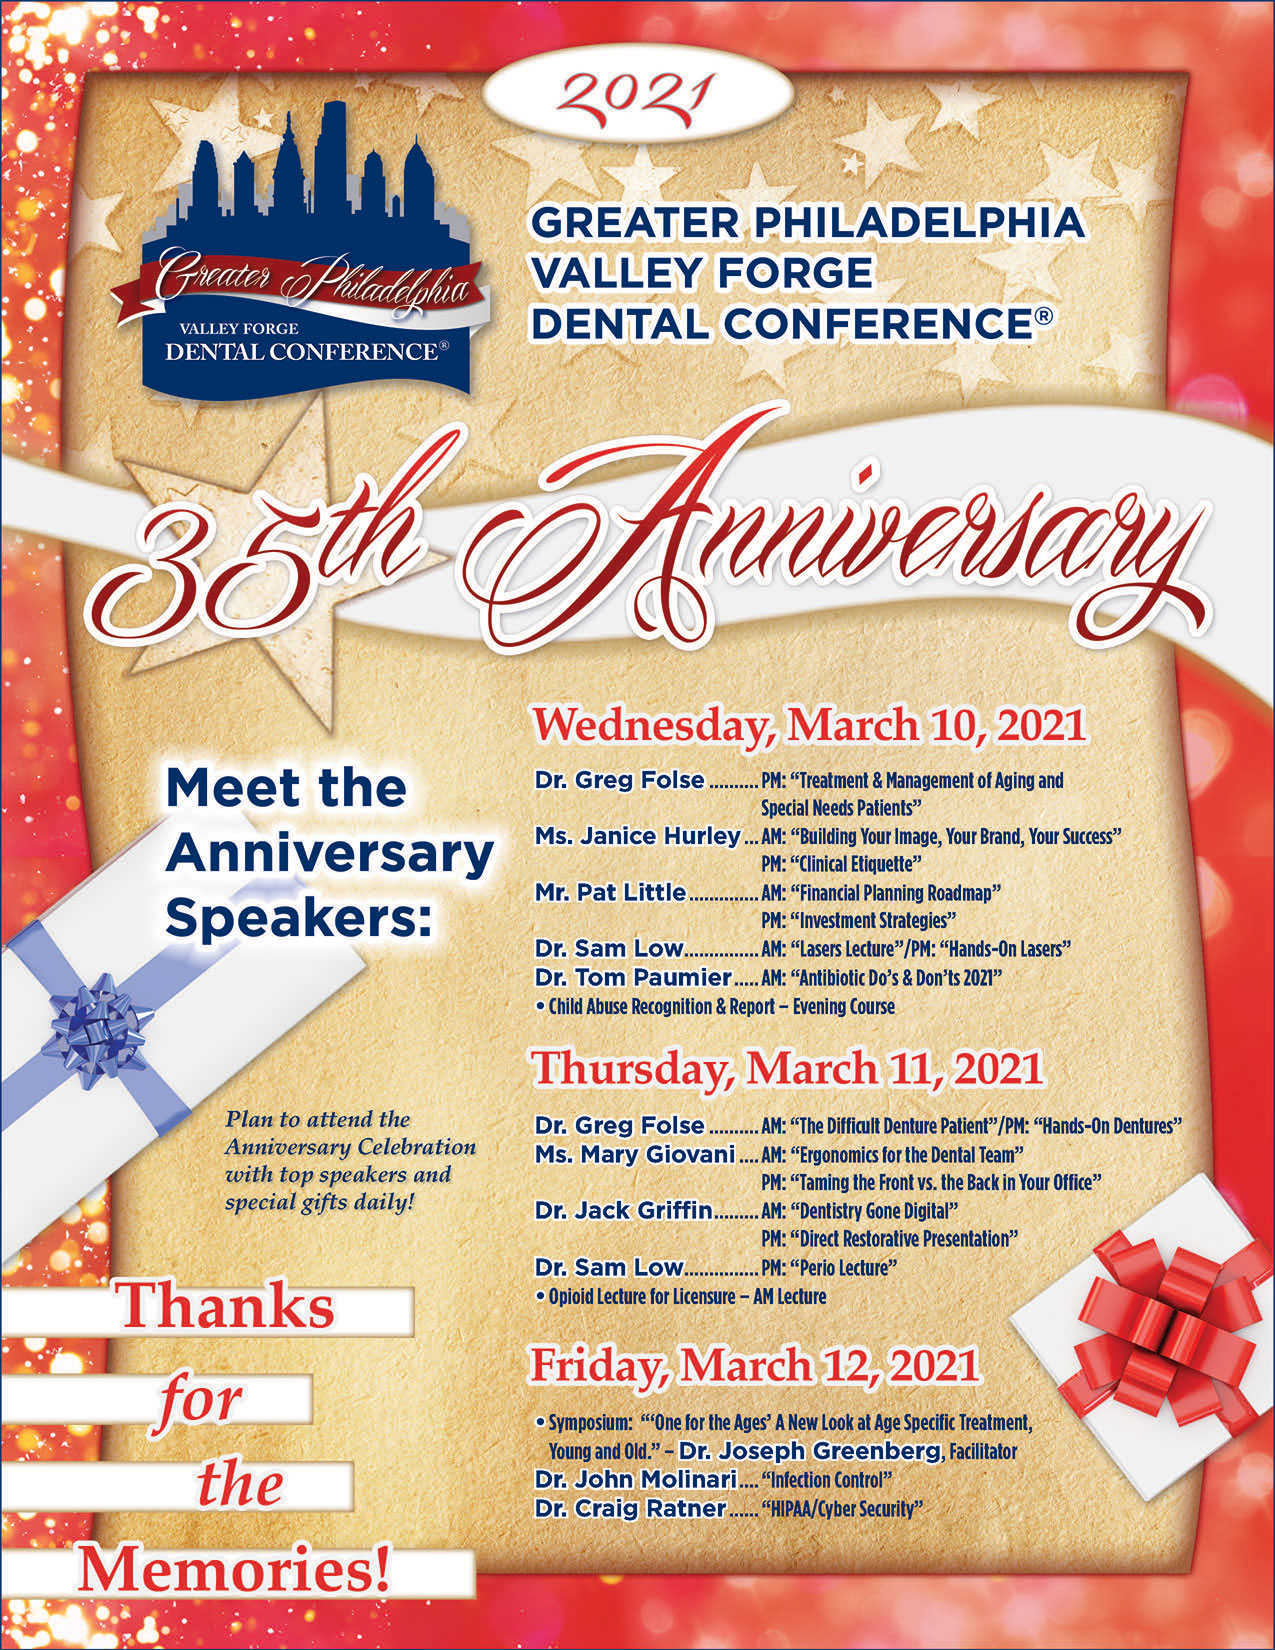 Greater Philadelphia Valley Forge Dental Conference 2021